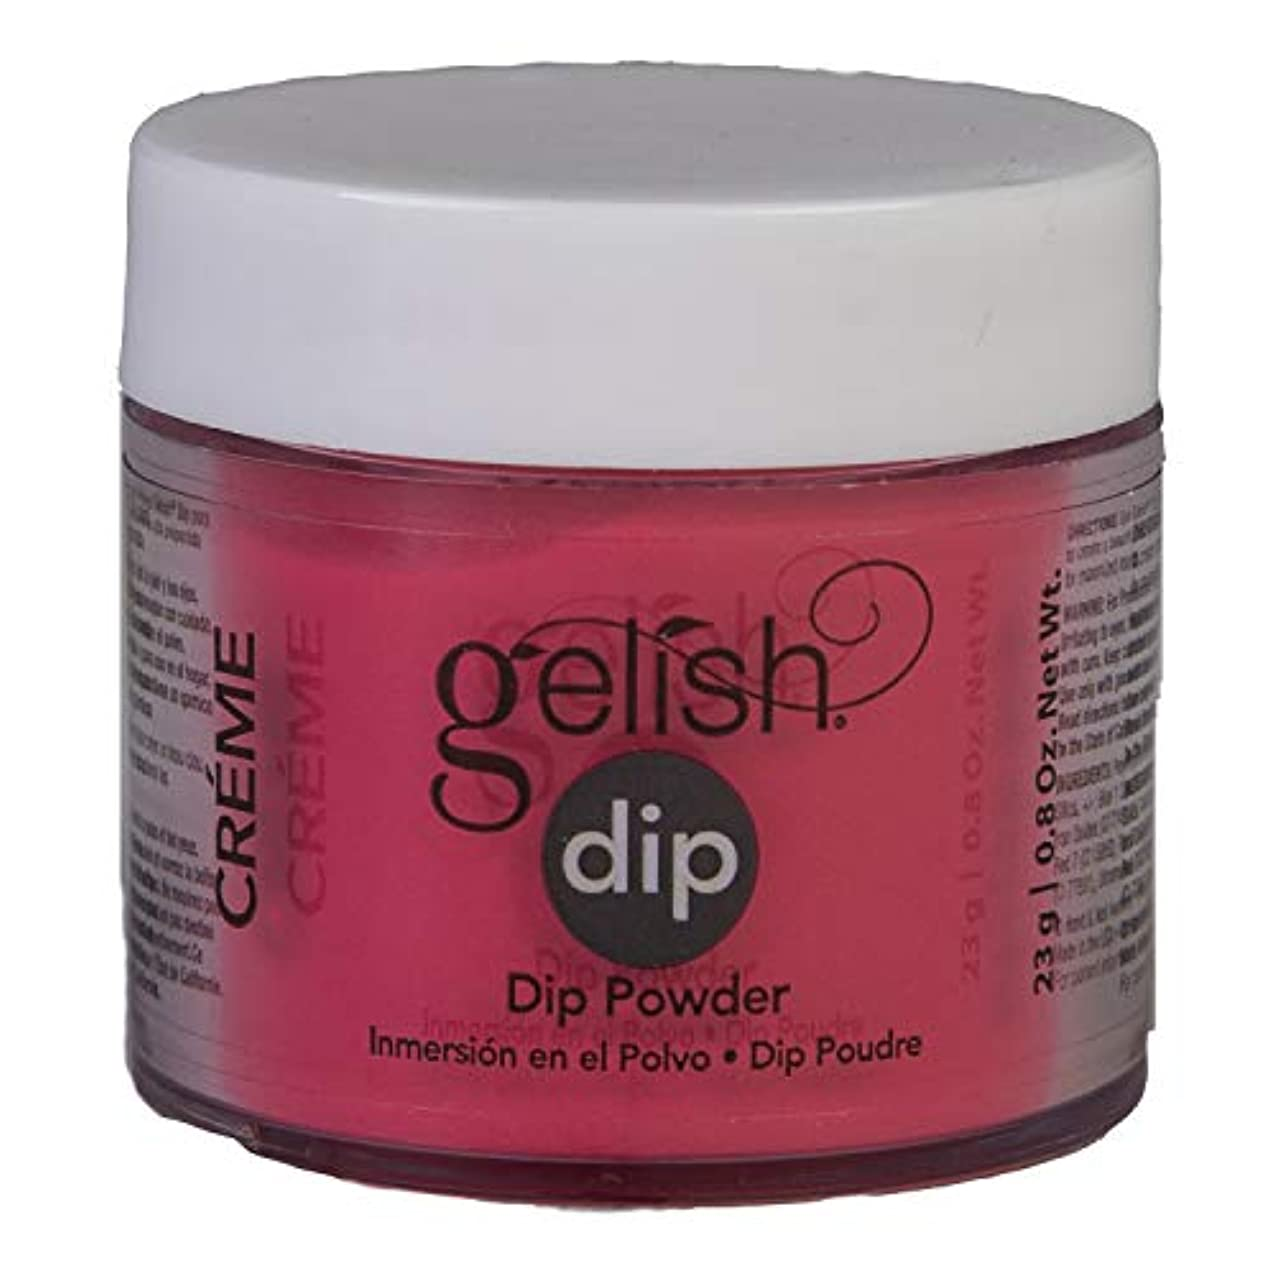 レース城日帰り旅行にHarmony Gelish - Dip Powder - Rocketman Collection - Put On Your Dancin' Shoes - 23g / 0.8oz